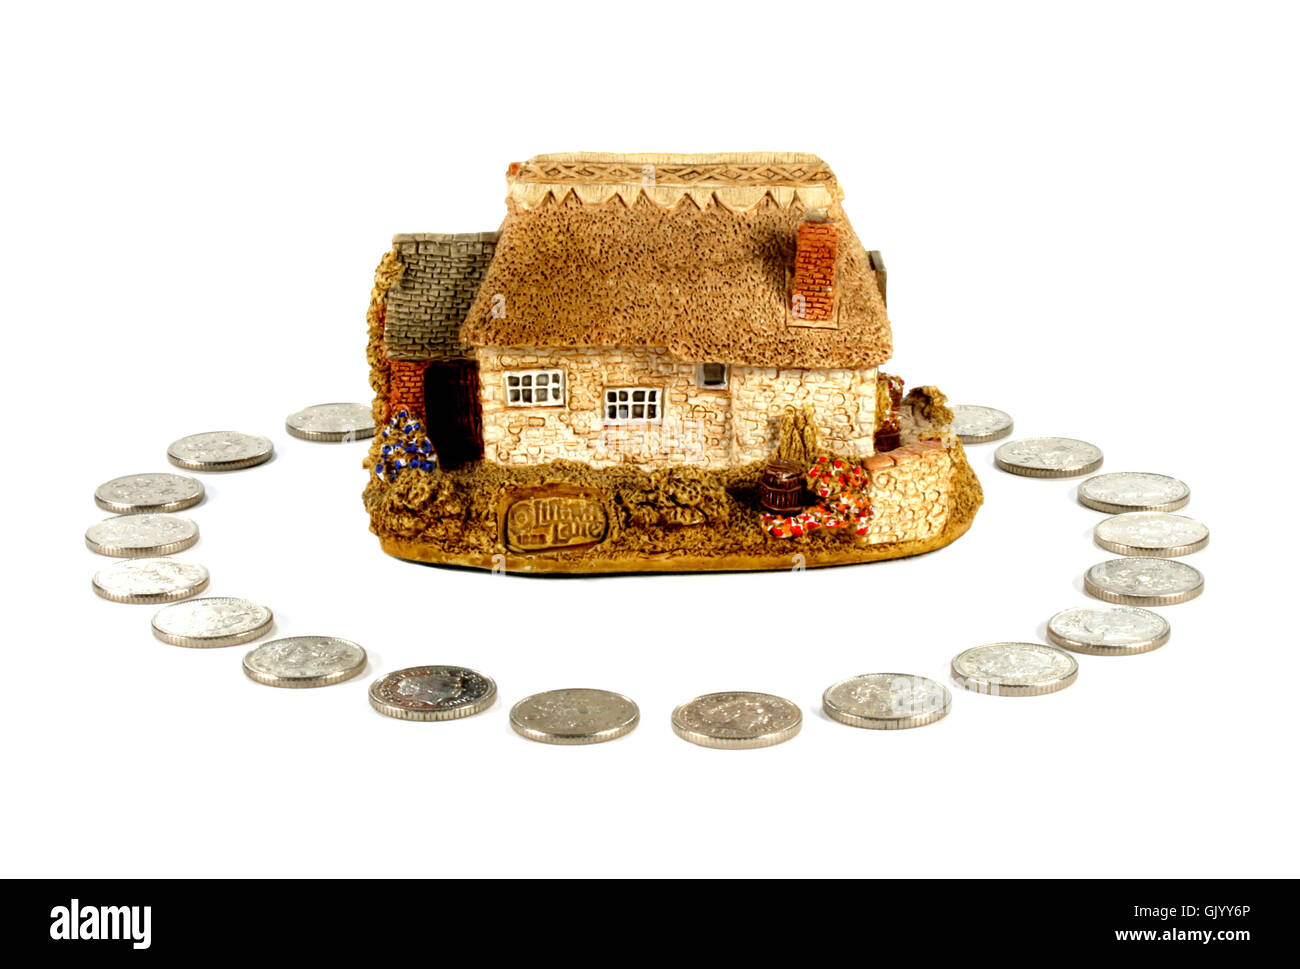 House home insurance - Stock Image